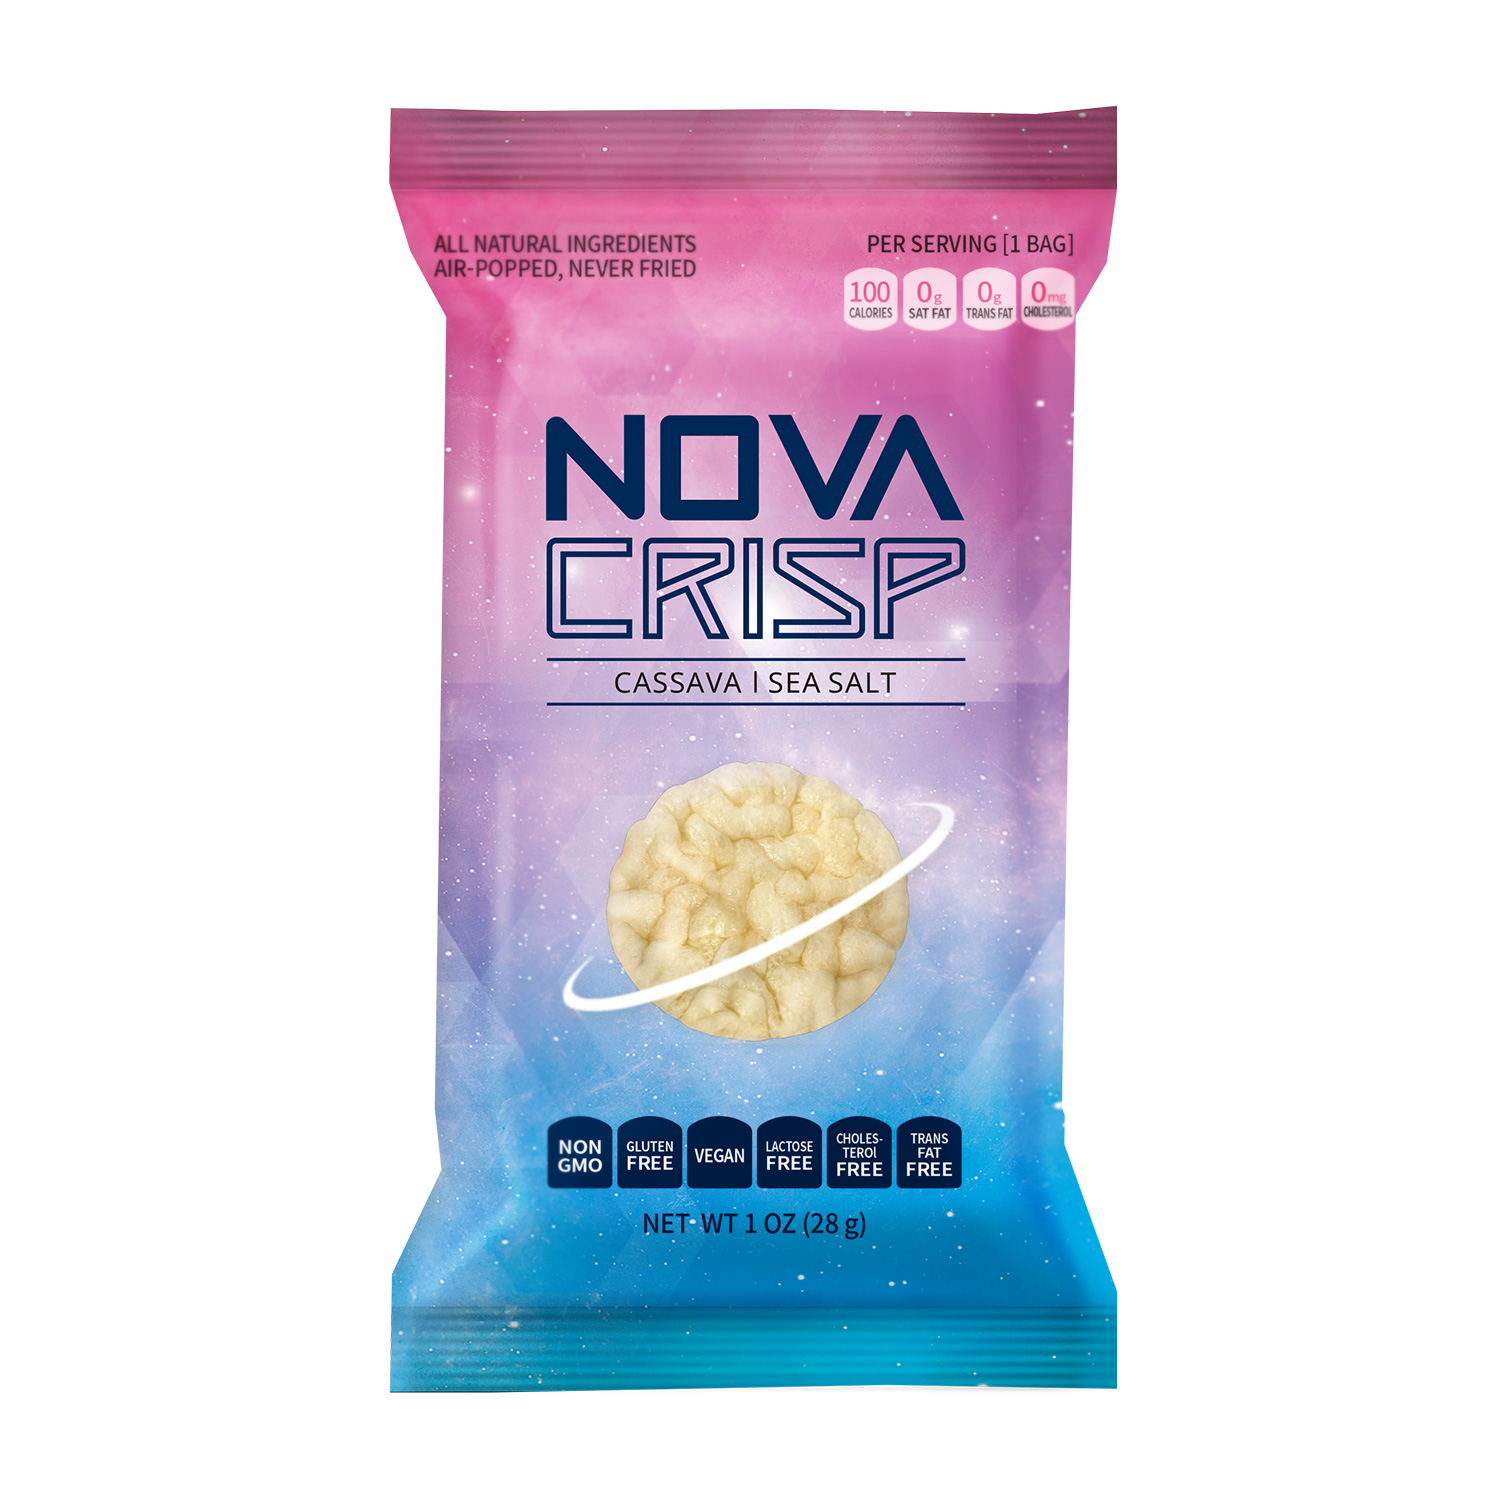 Novacrisp cassava chips sea salt 4oz Grayscale image